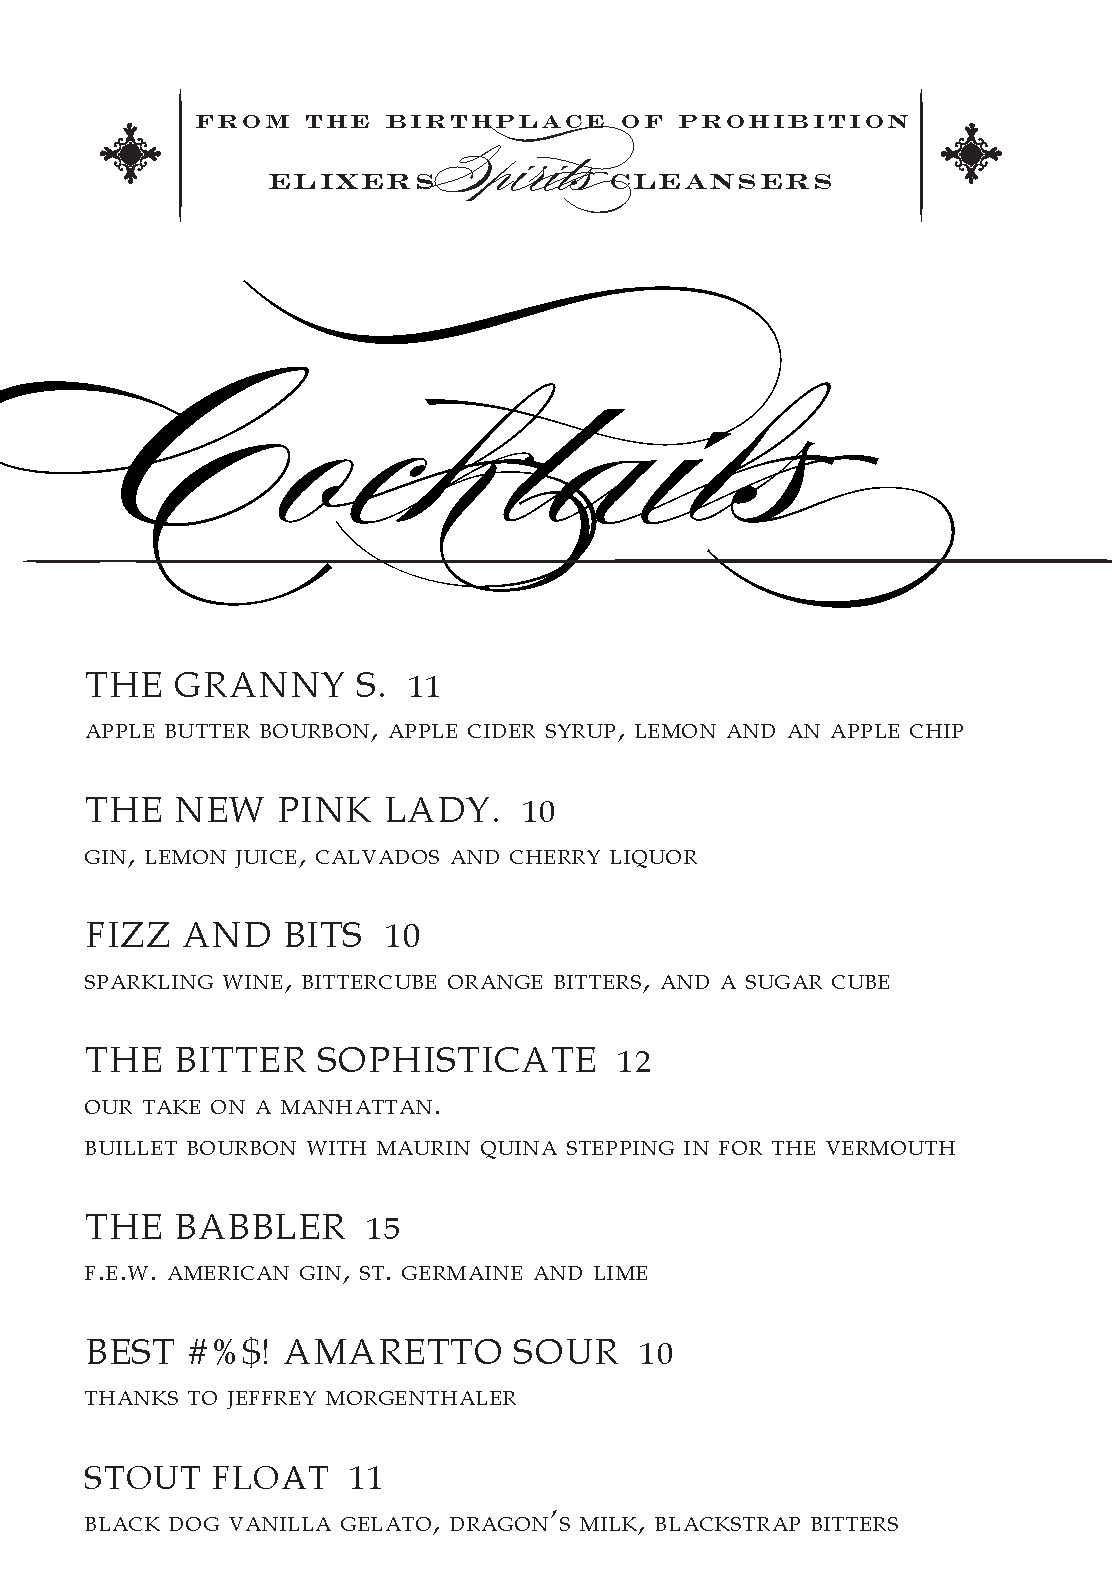 A New Year calls for new cocktails! Check out some of our latest creations from behind the bar at the Found.